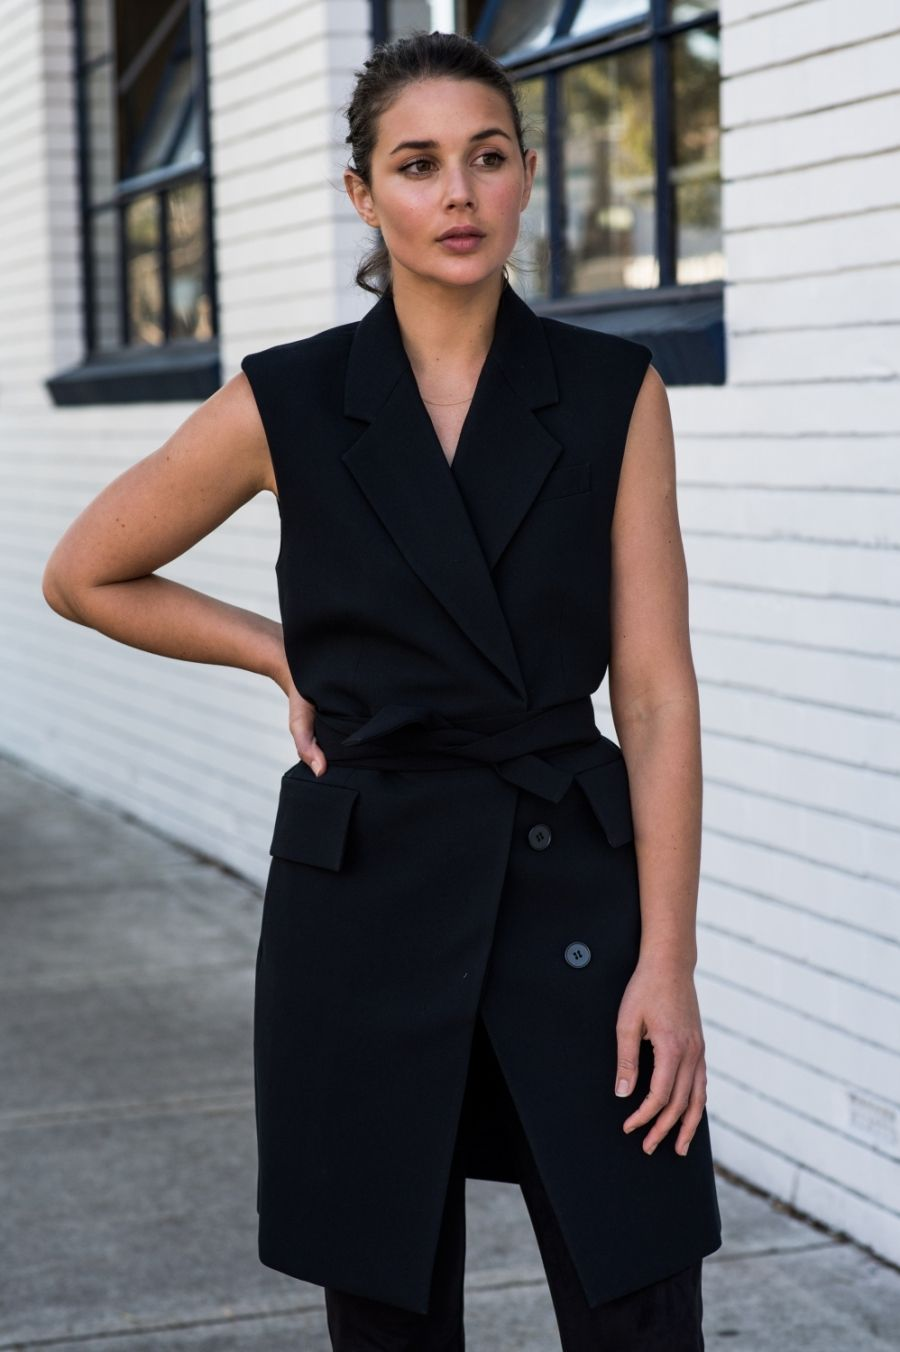 Karien Anne / How To Dress Like You Mean Business by Harper and Harley